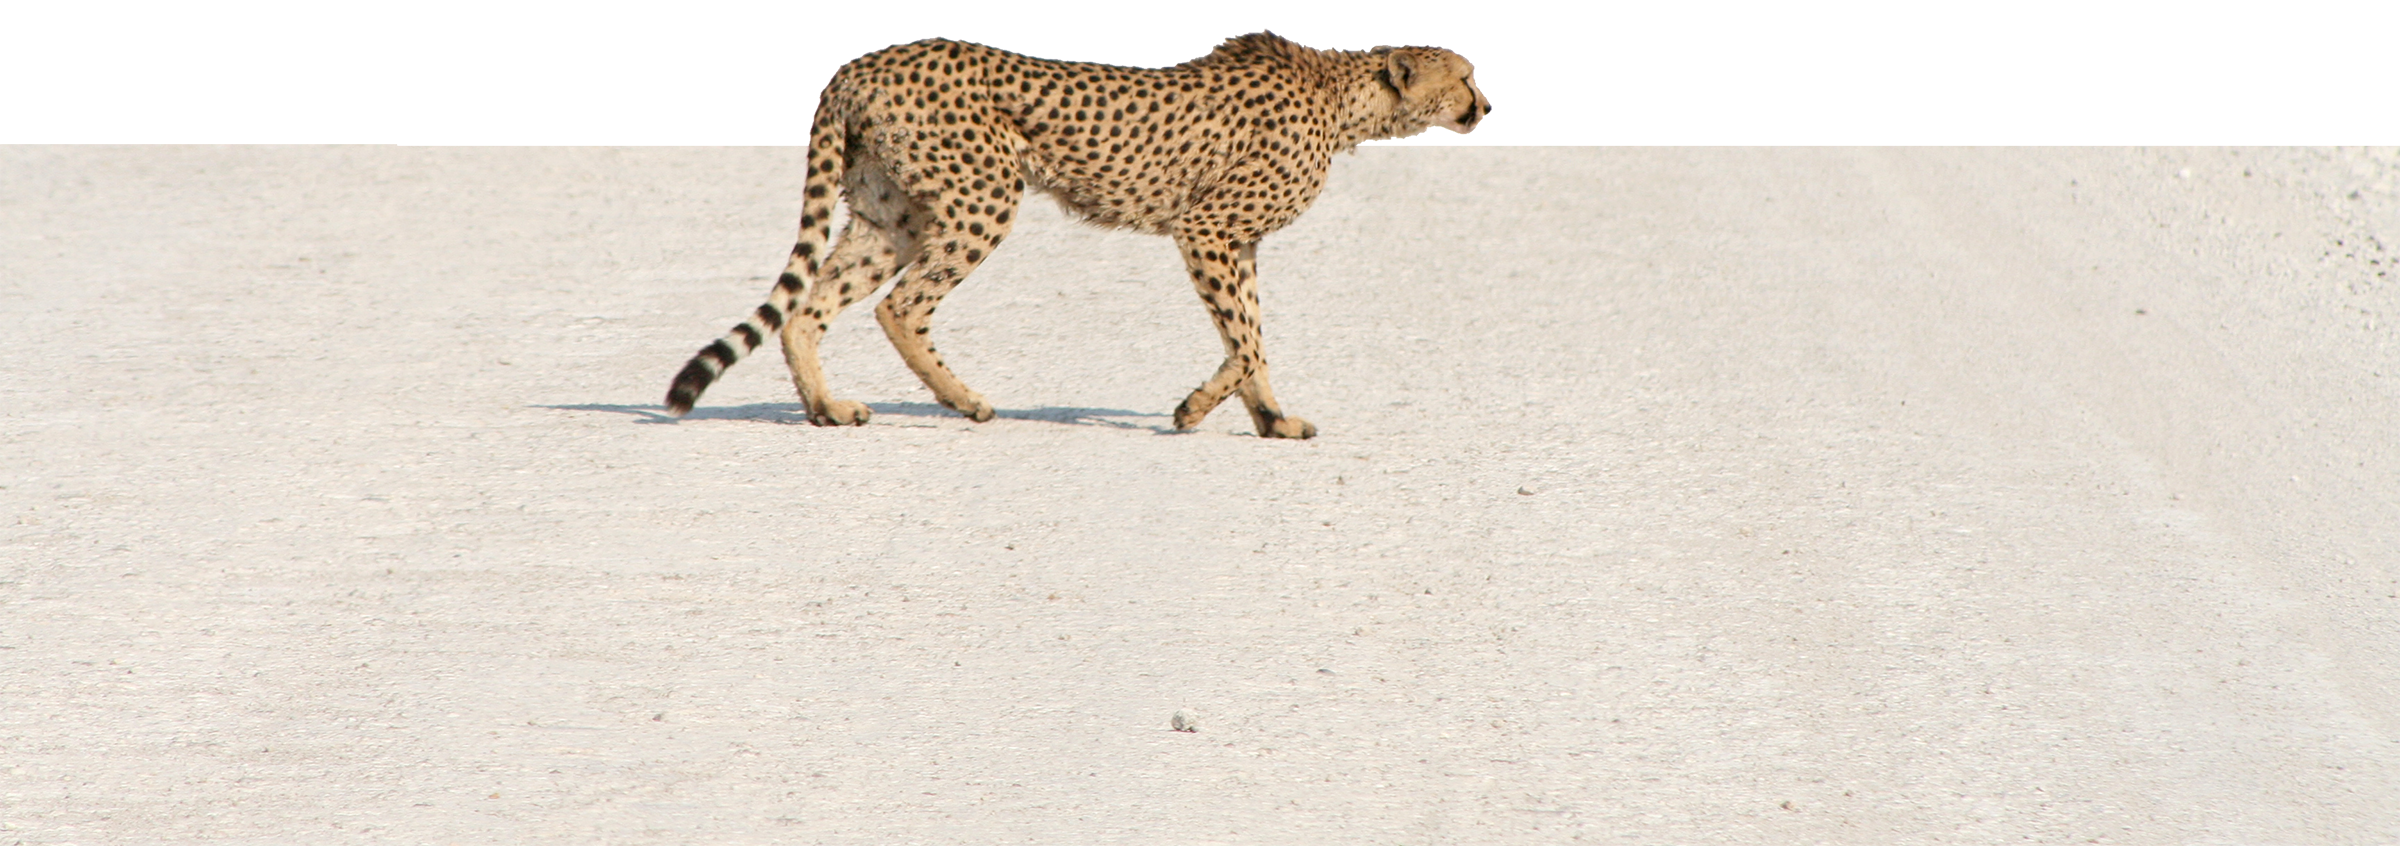 cheetah-etosha-national-park